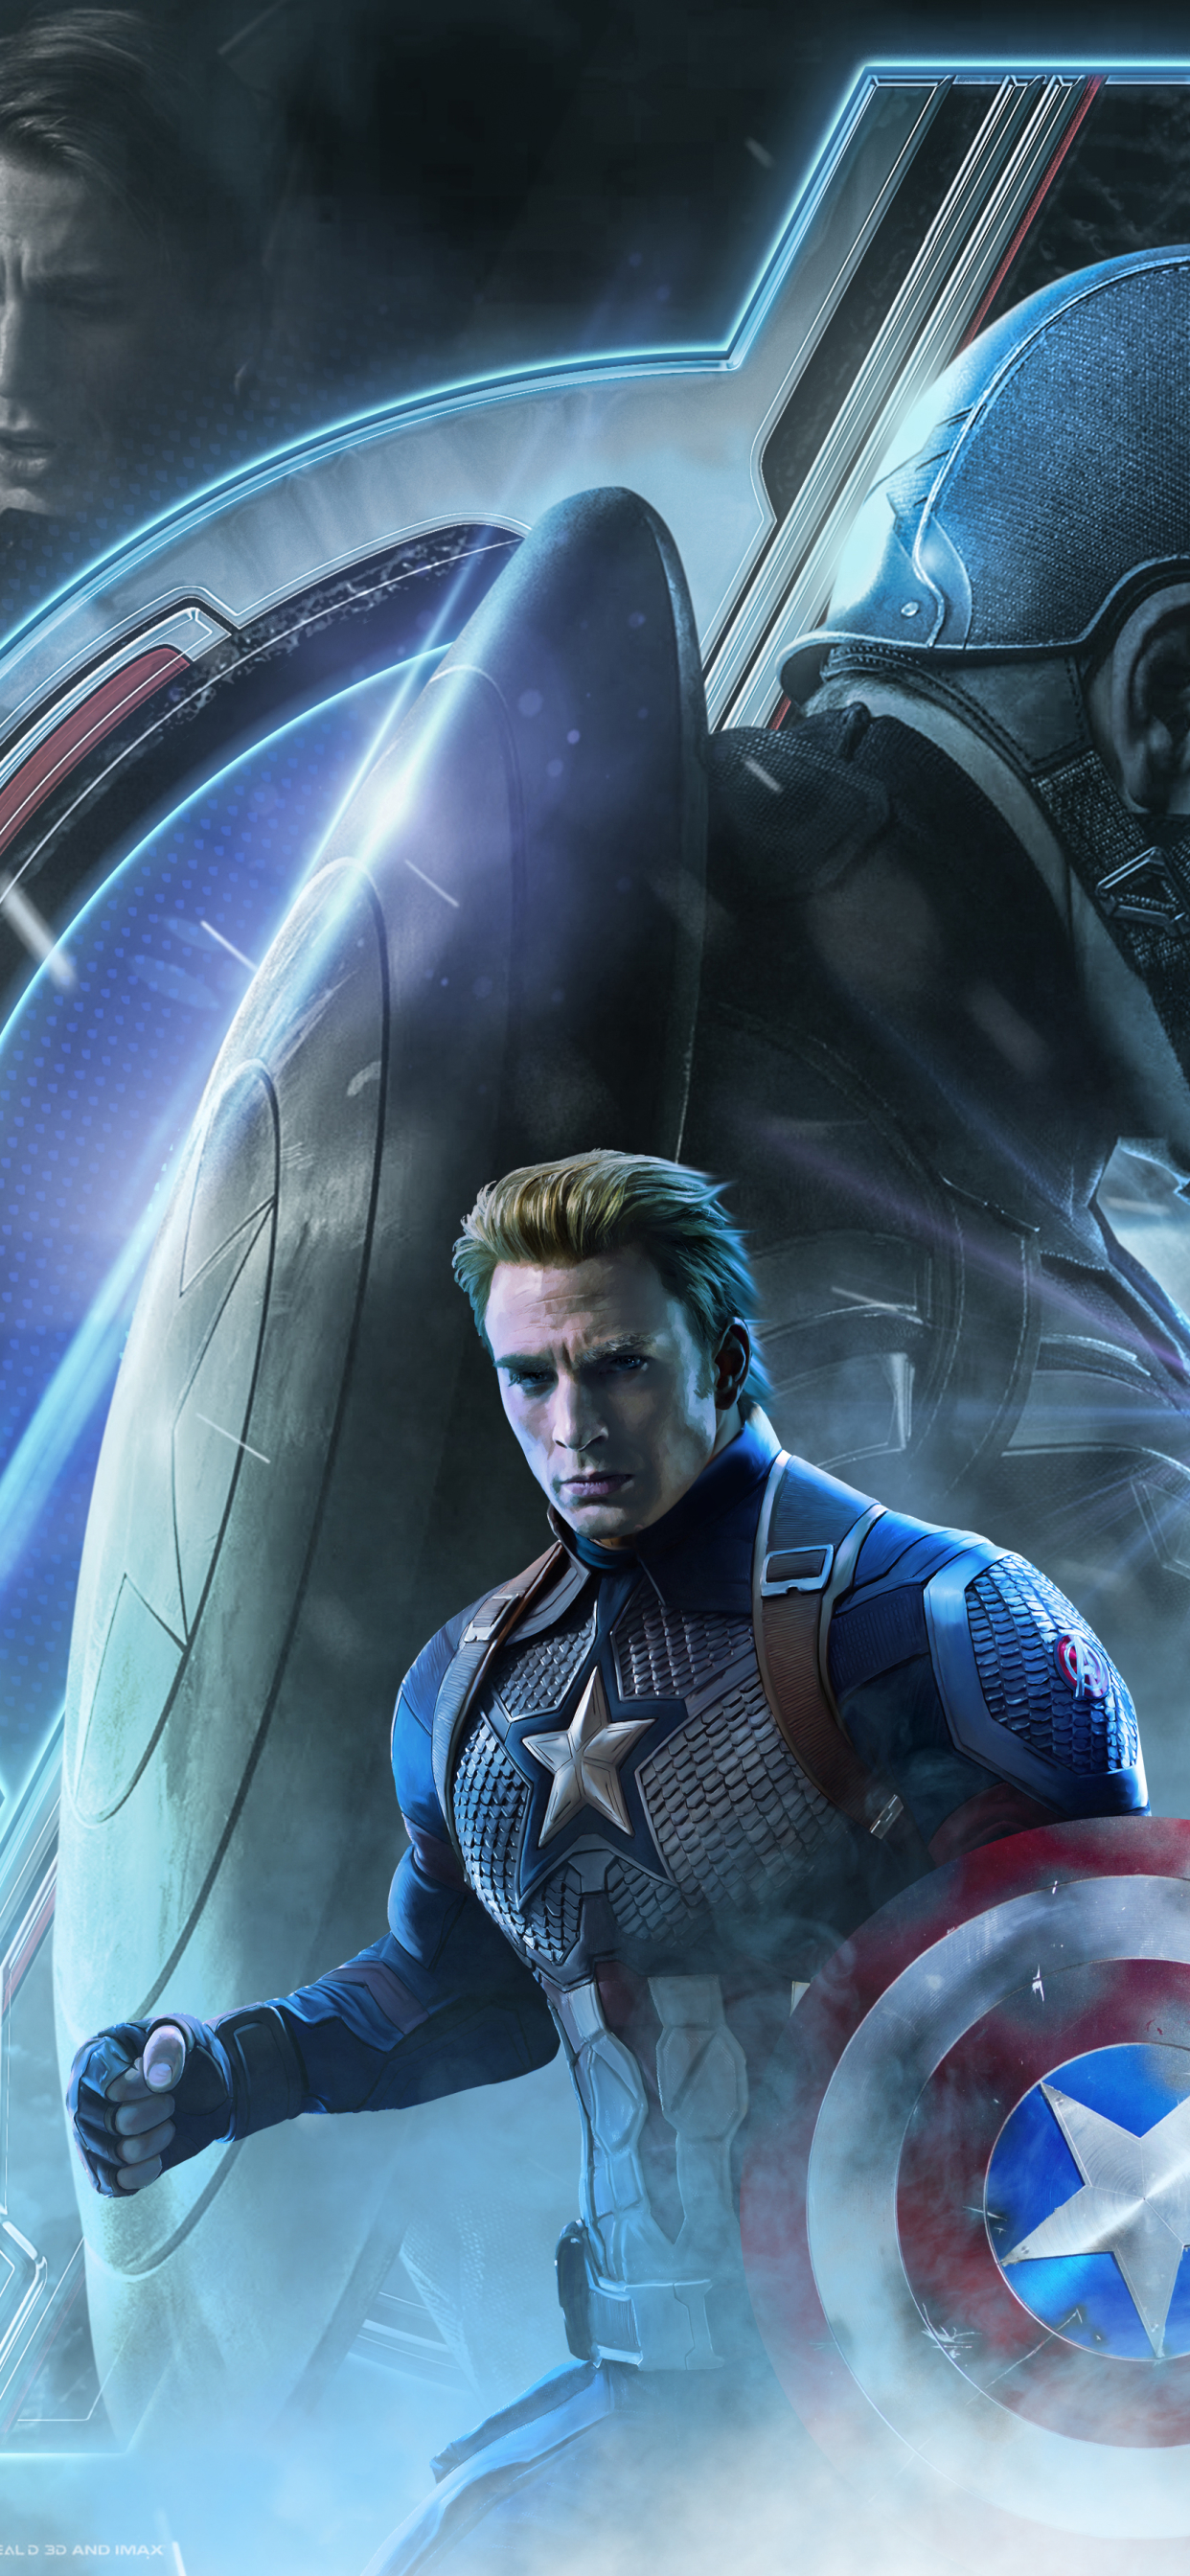 1242x2688 Avengers Endgame Captain America Poster Art Iphone Xs